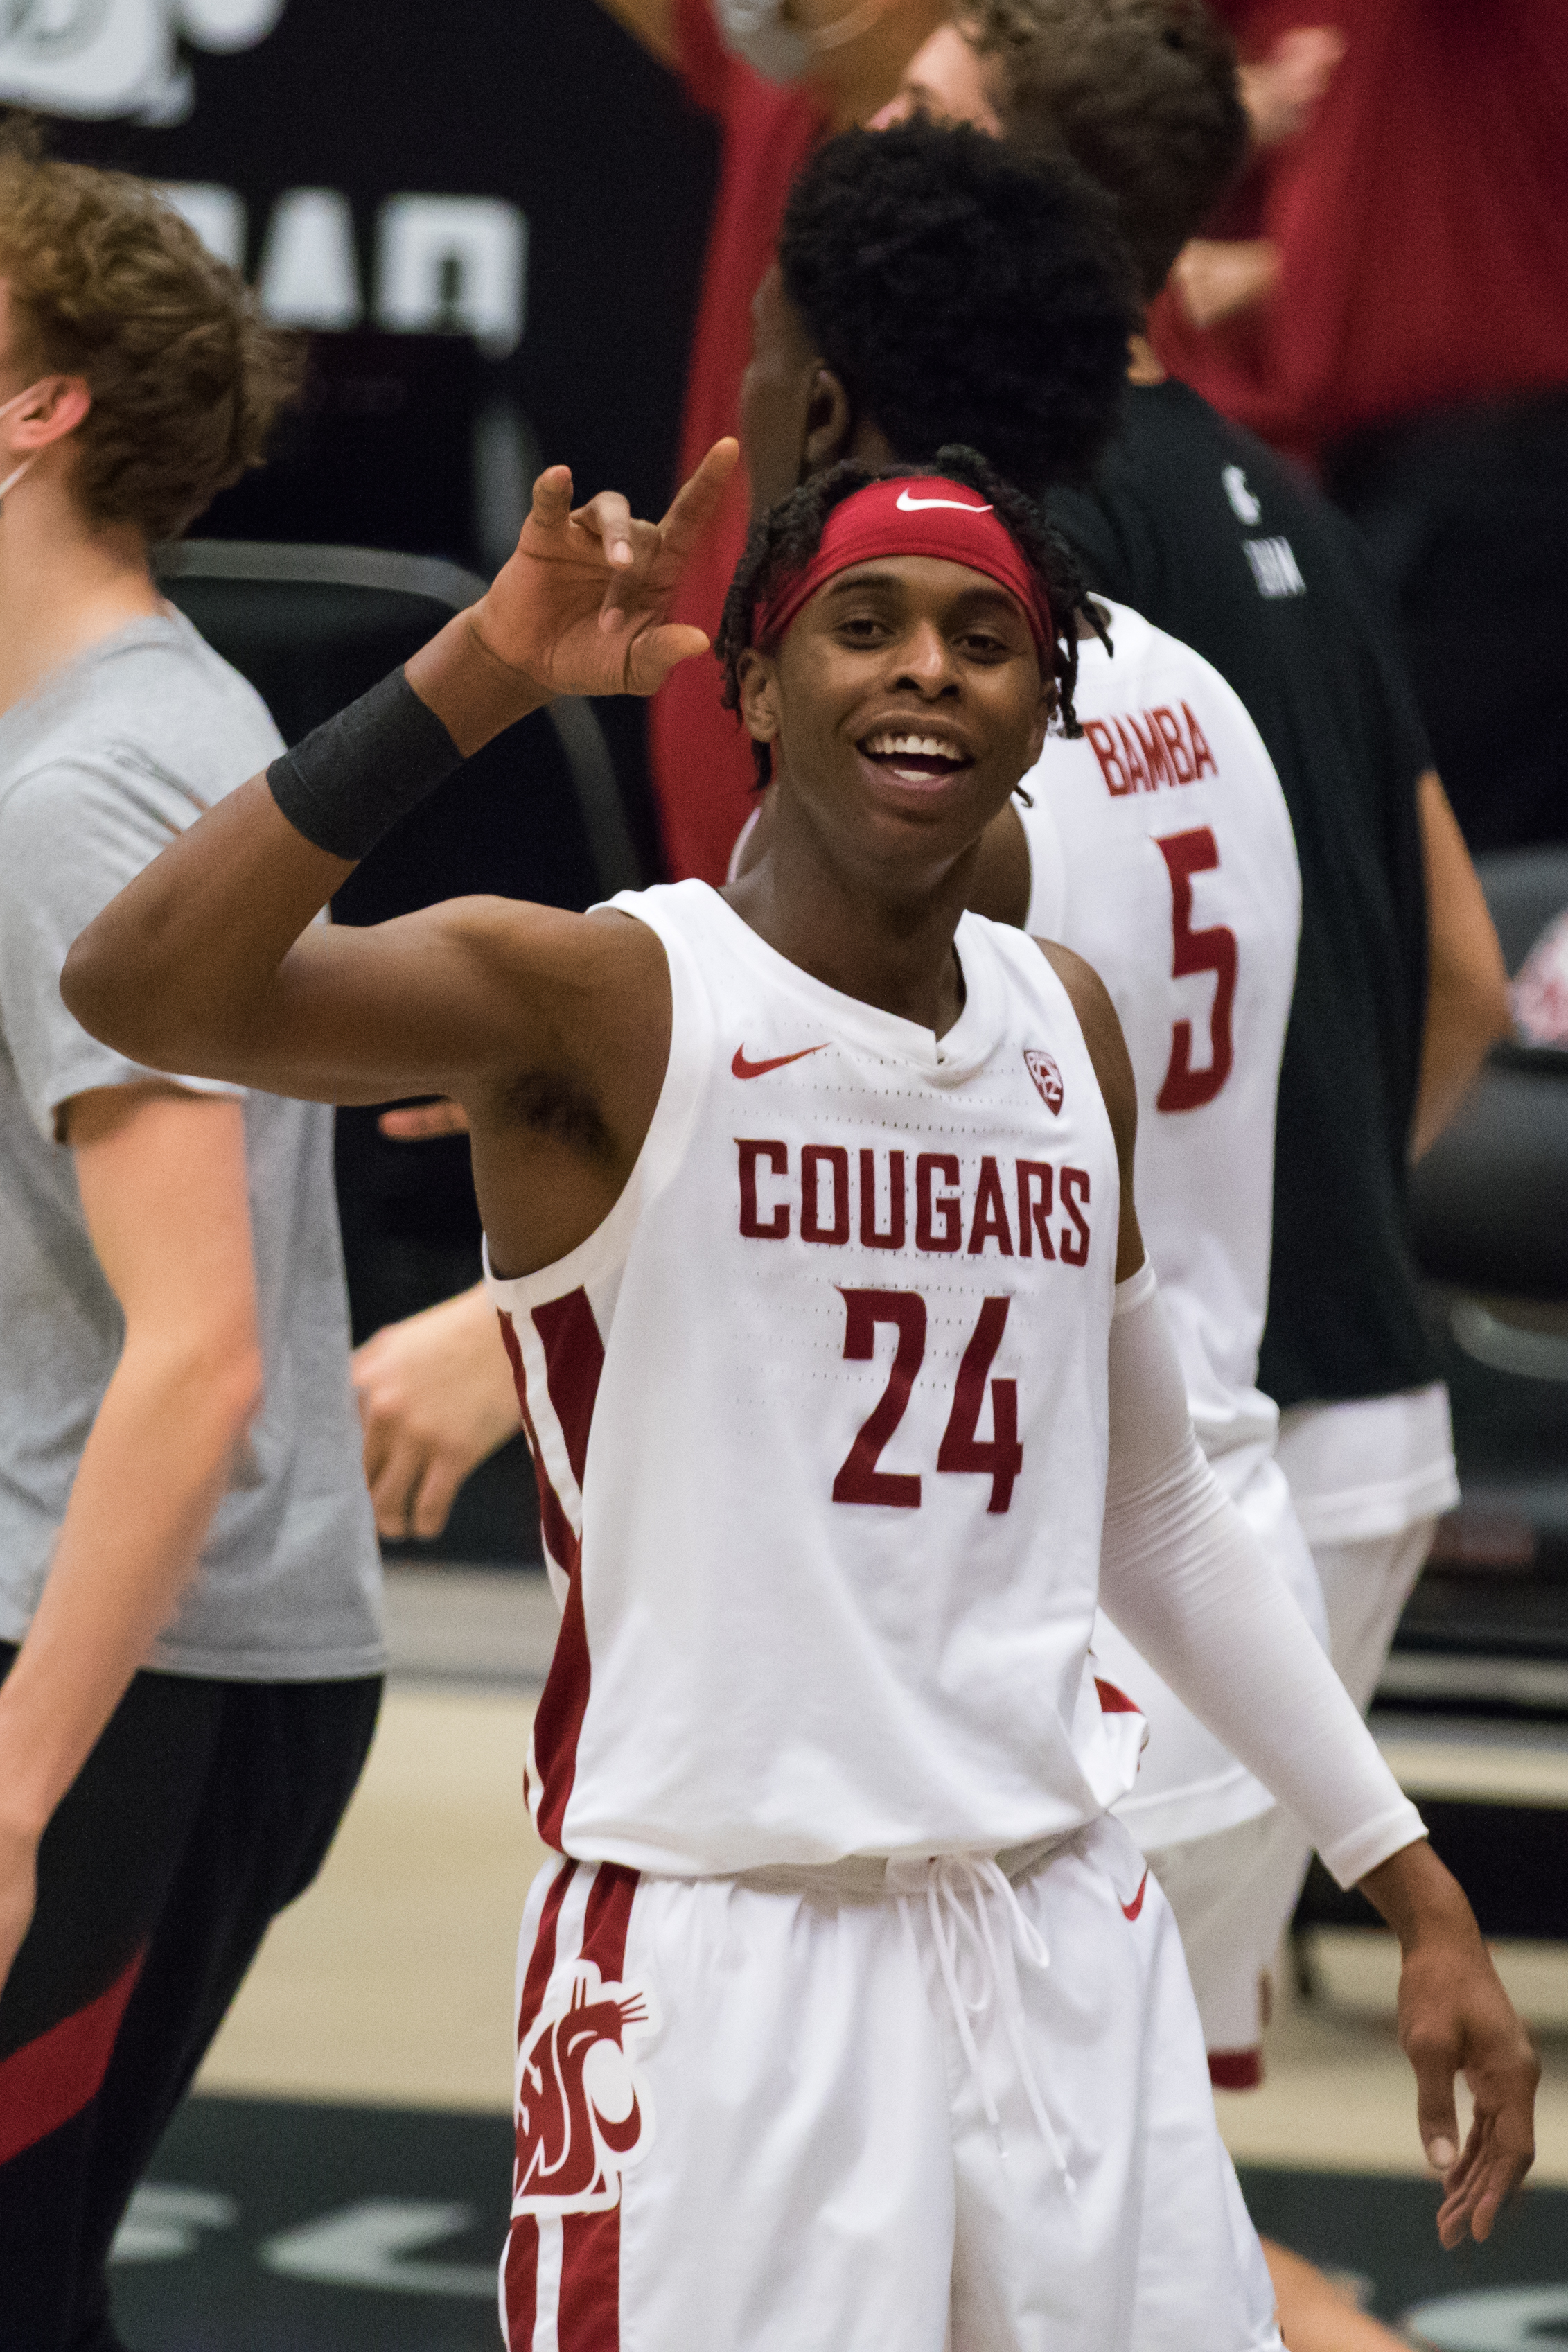 PULLMAN, WA - FEBRUARY 20: Washington State guard Noah Williams (24) hypes up the fans during the third overtime period of a Pac 12 matchup between the Stanford Cardinal and the Washington State Cougars on February 20, 2021, at Beasley Coliseum in Pullman, WA.